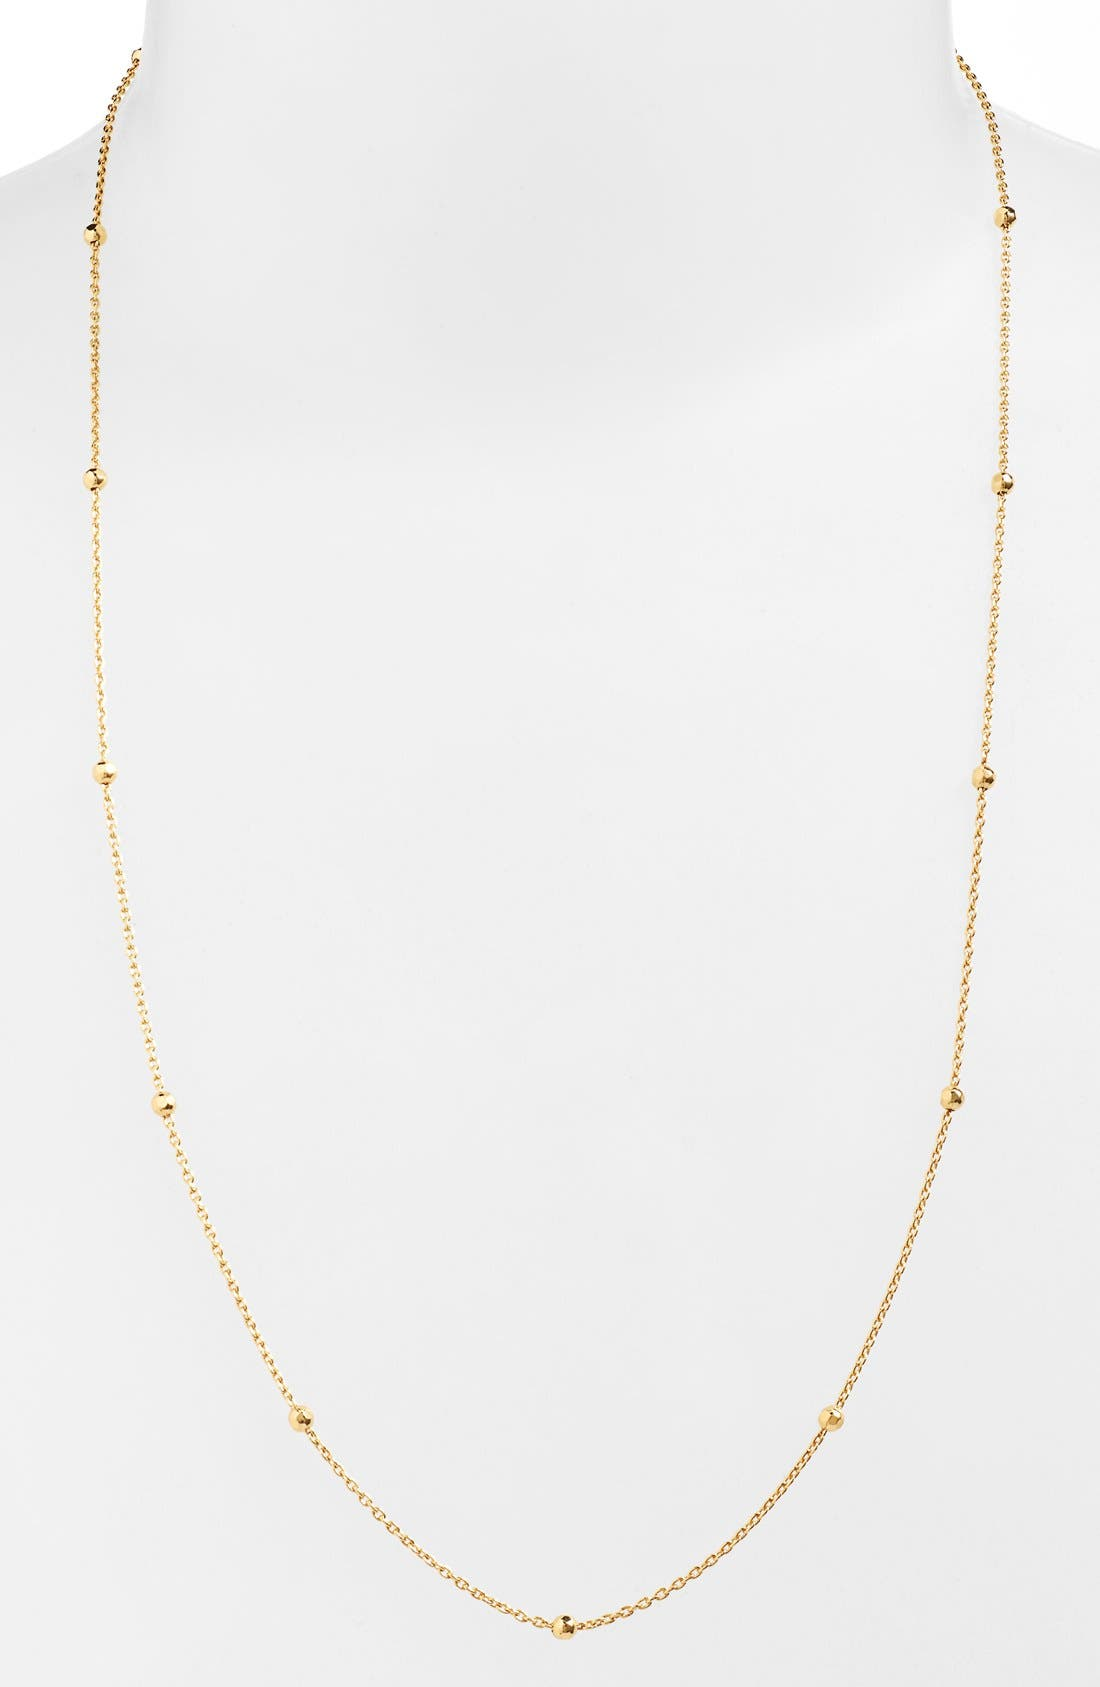 ARGENTO VIVO G Station Necklace, 34 in Gold